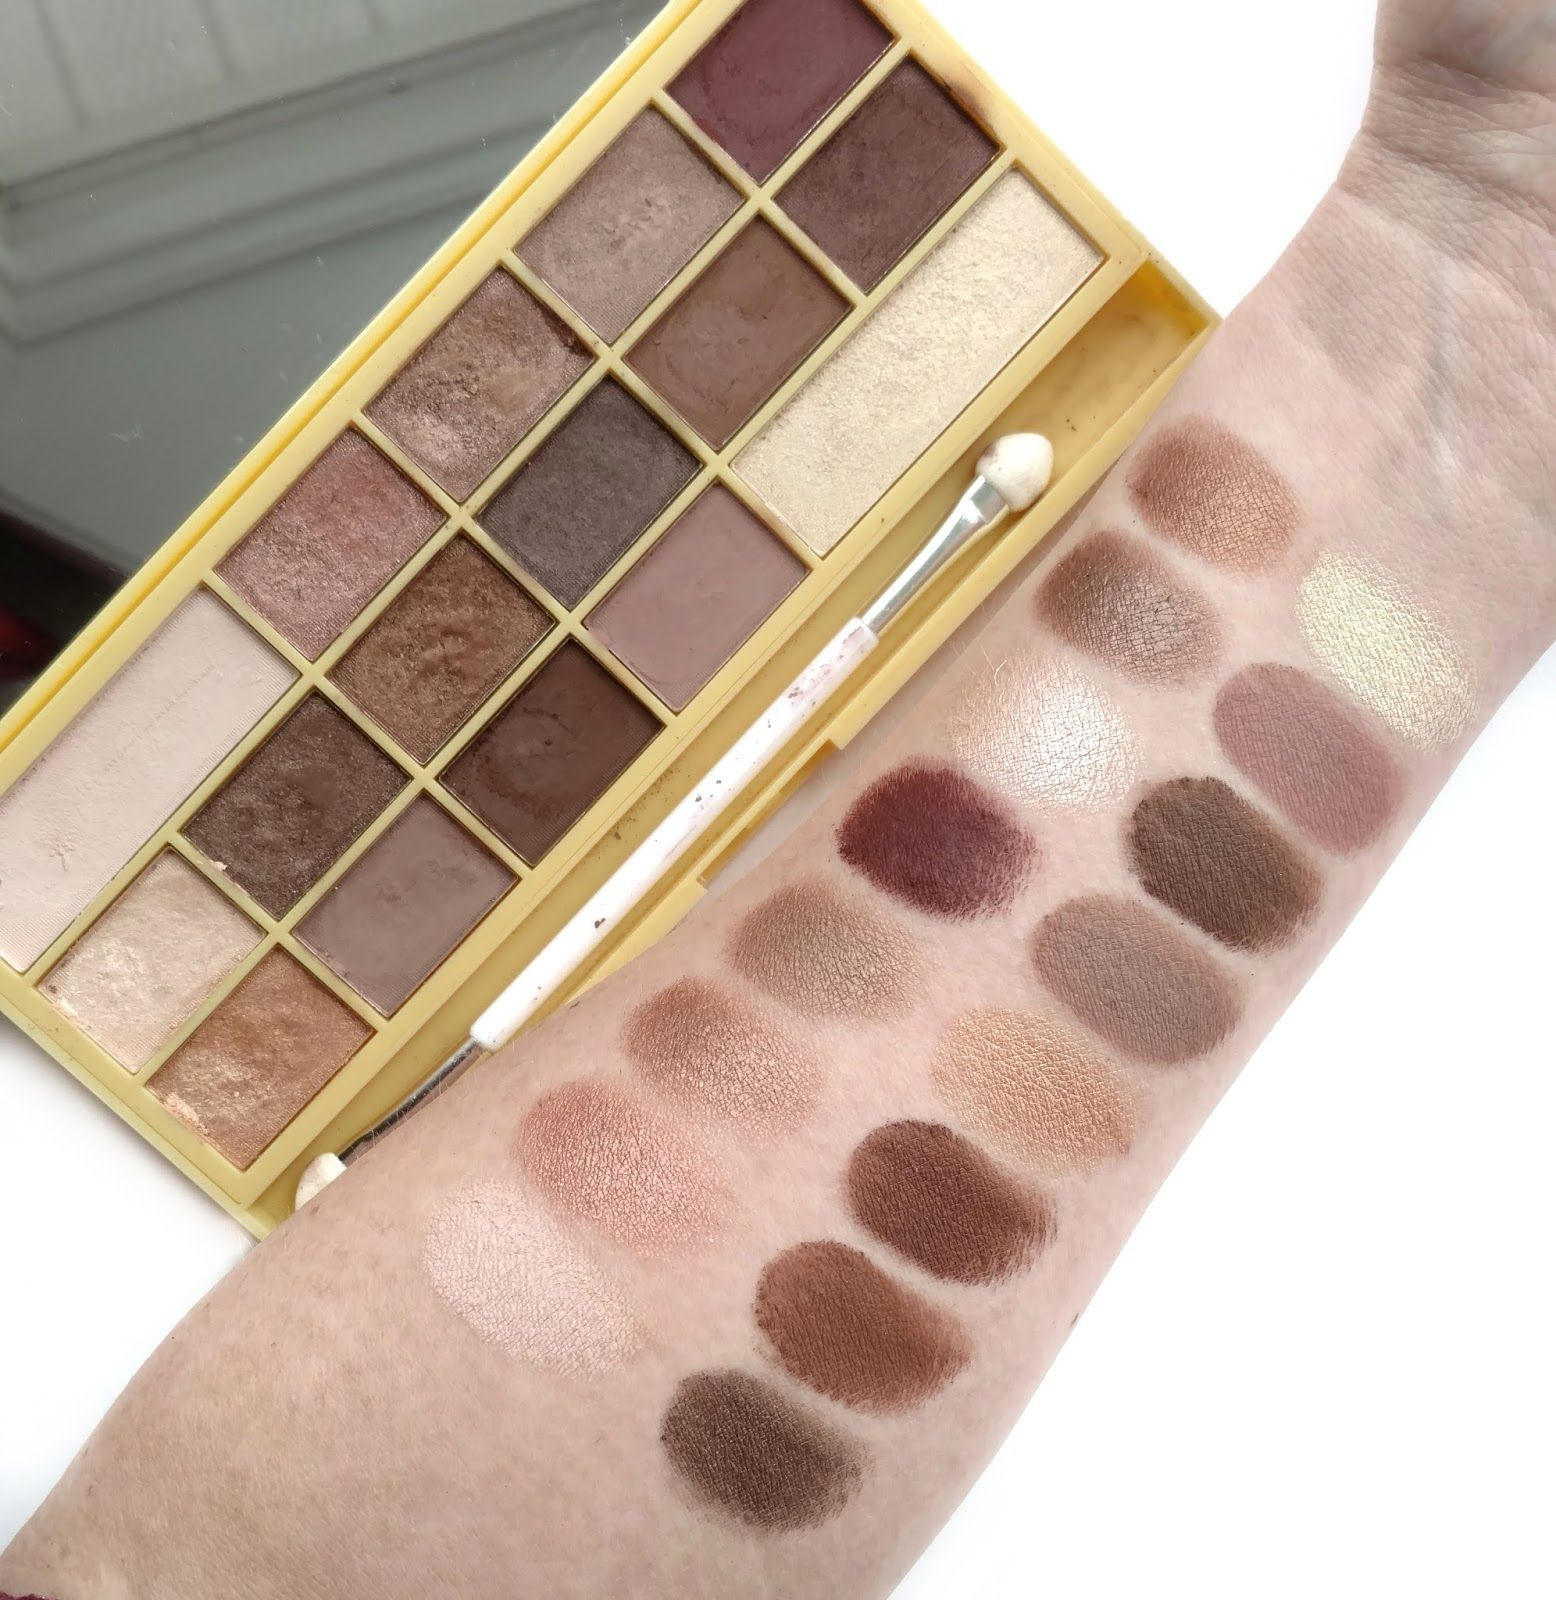 Rose Gold Chocolate Bar Eyeshadow Palette by Revolution Beauty #6